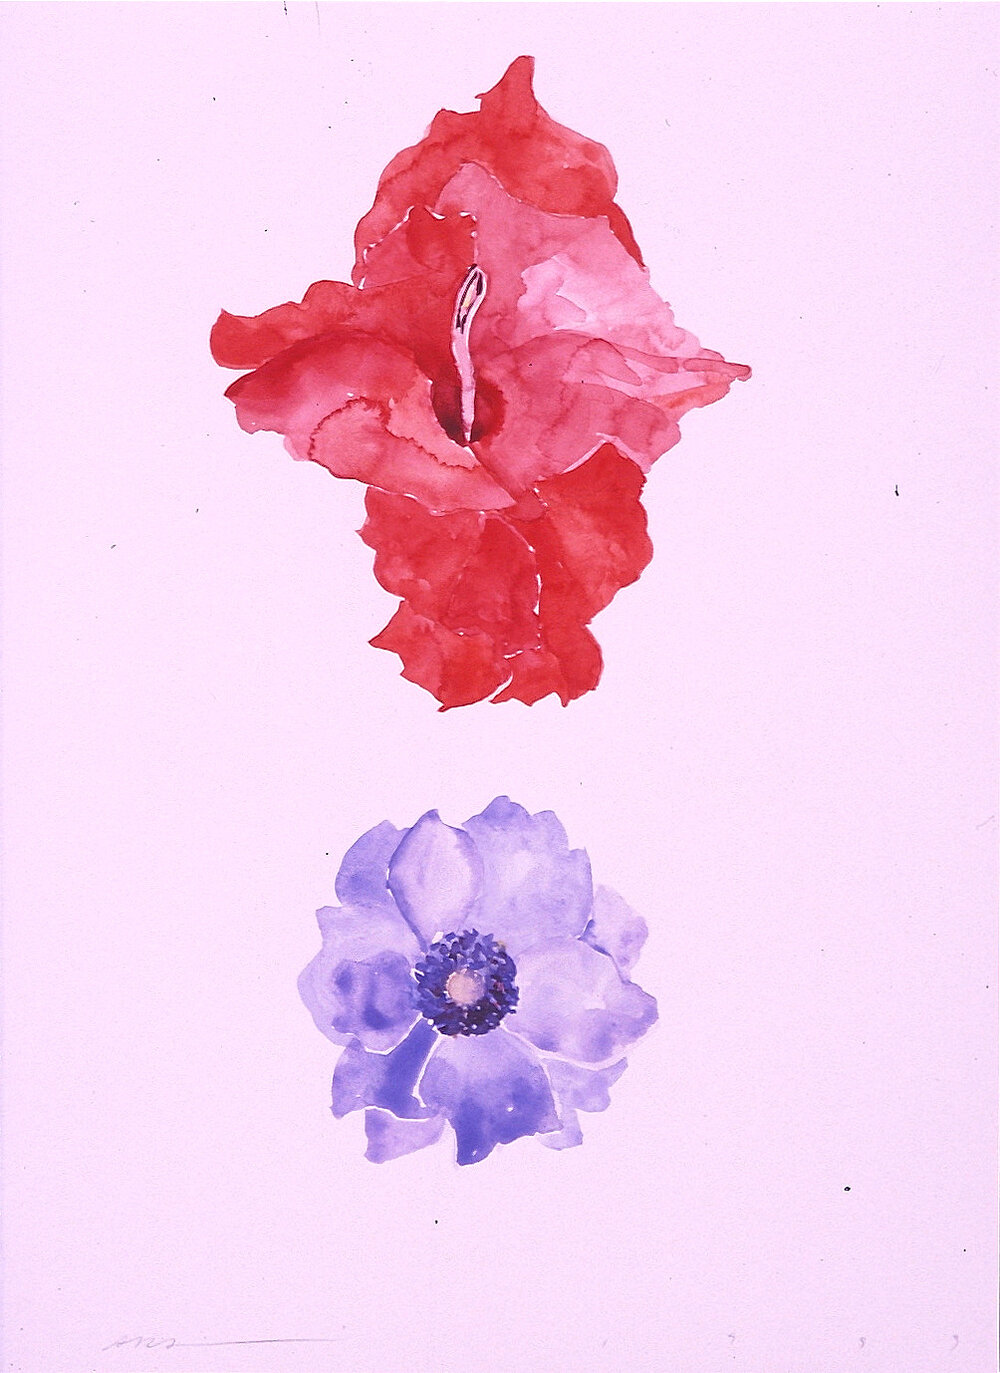 God disguised as Gladiola and Anemonie